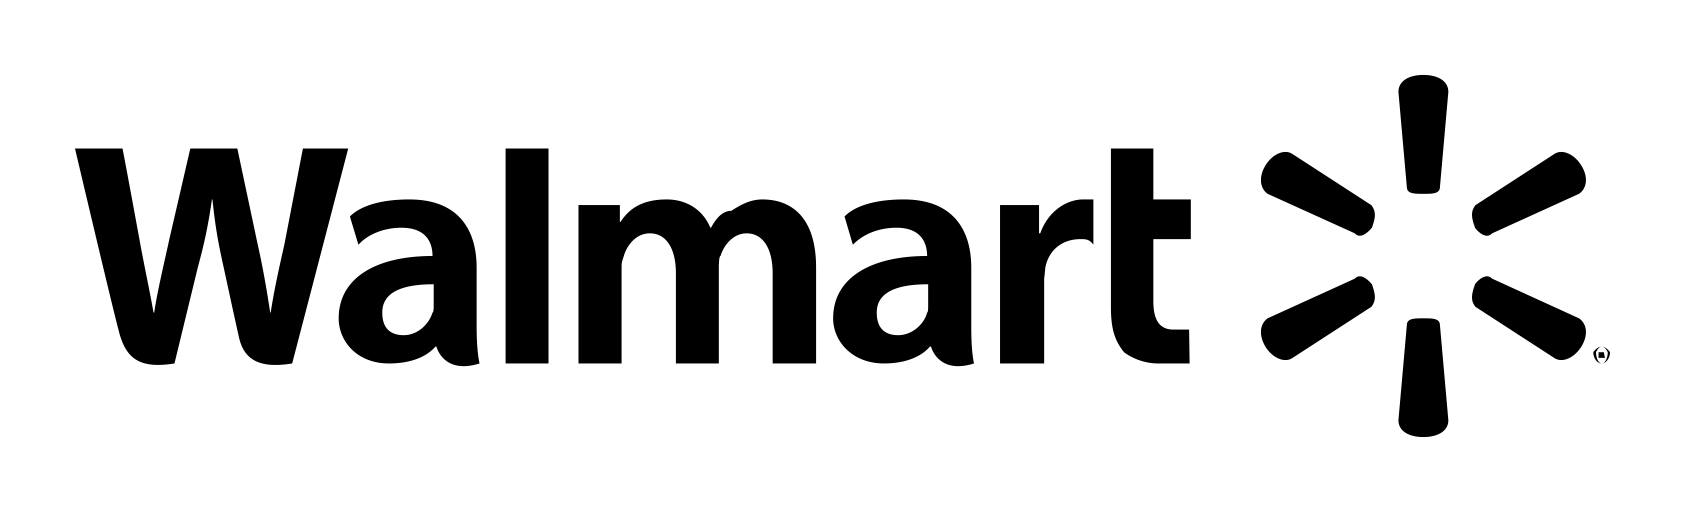 Walmart PNG Images Transparent Free Download.